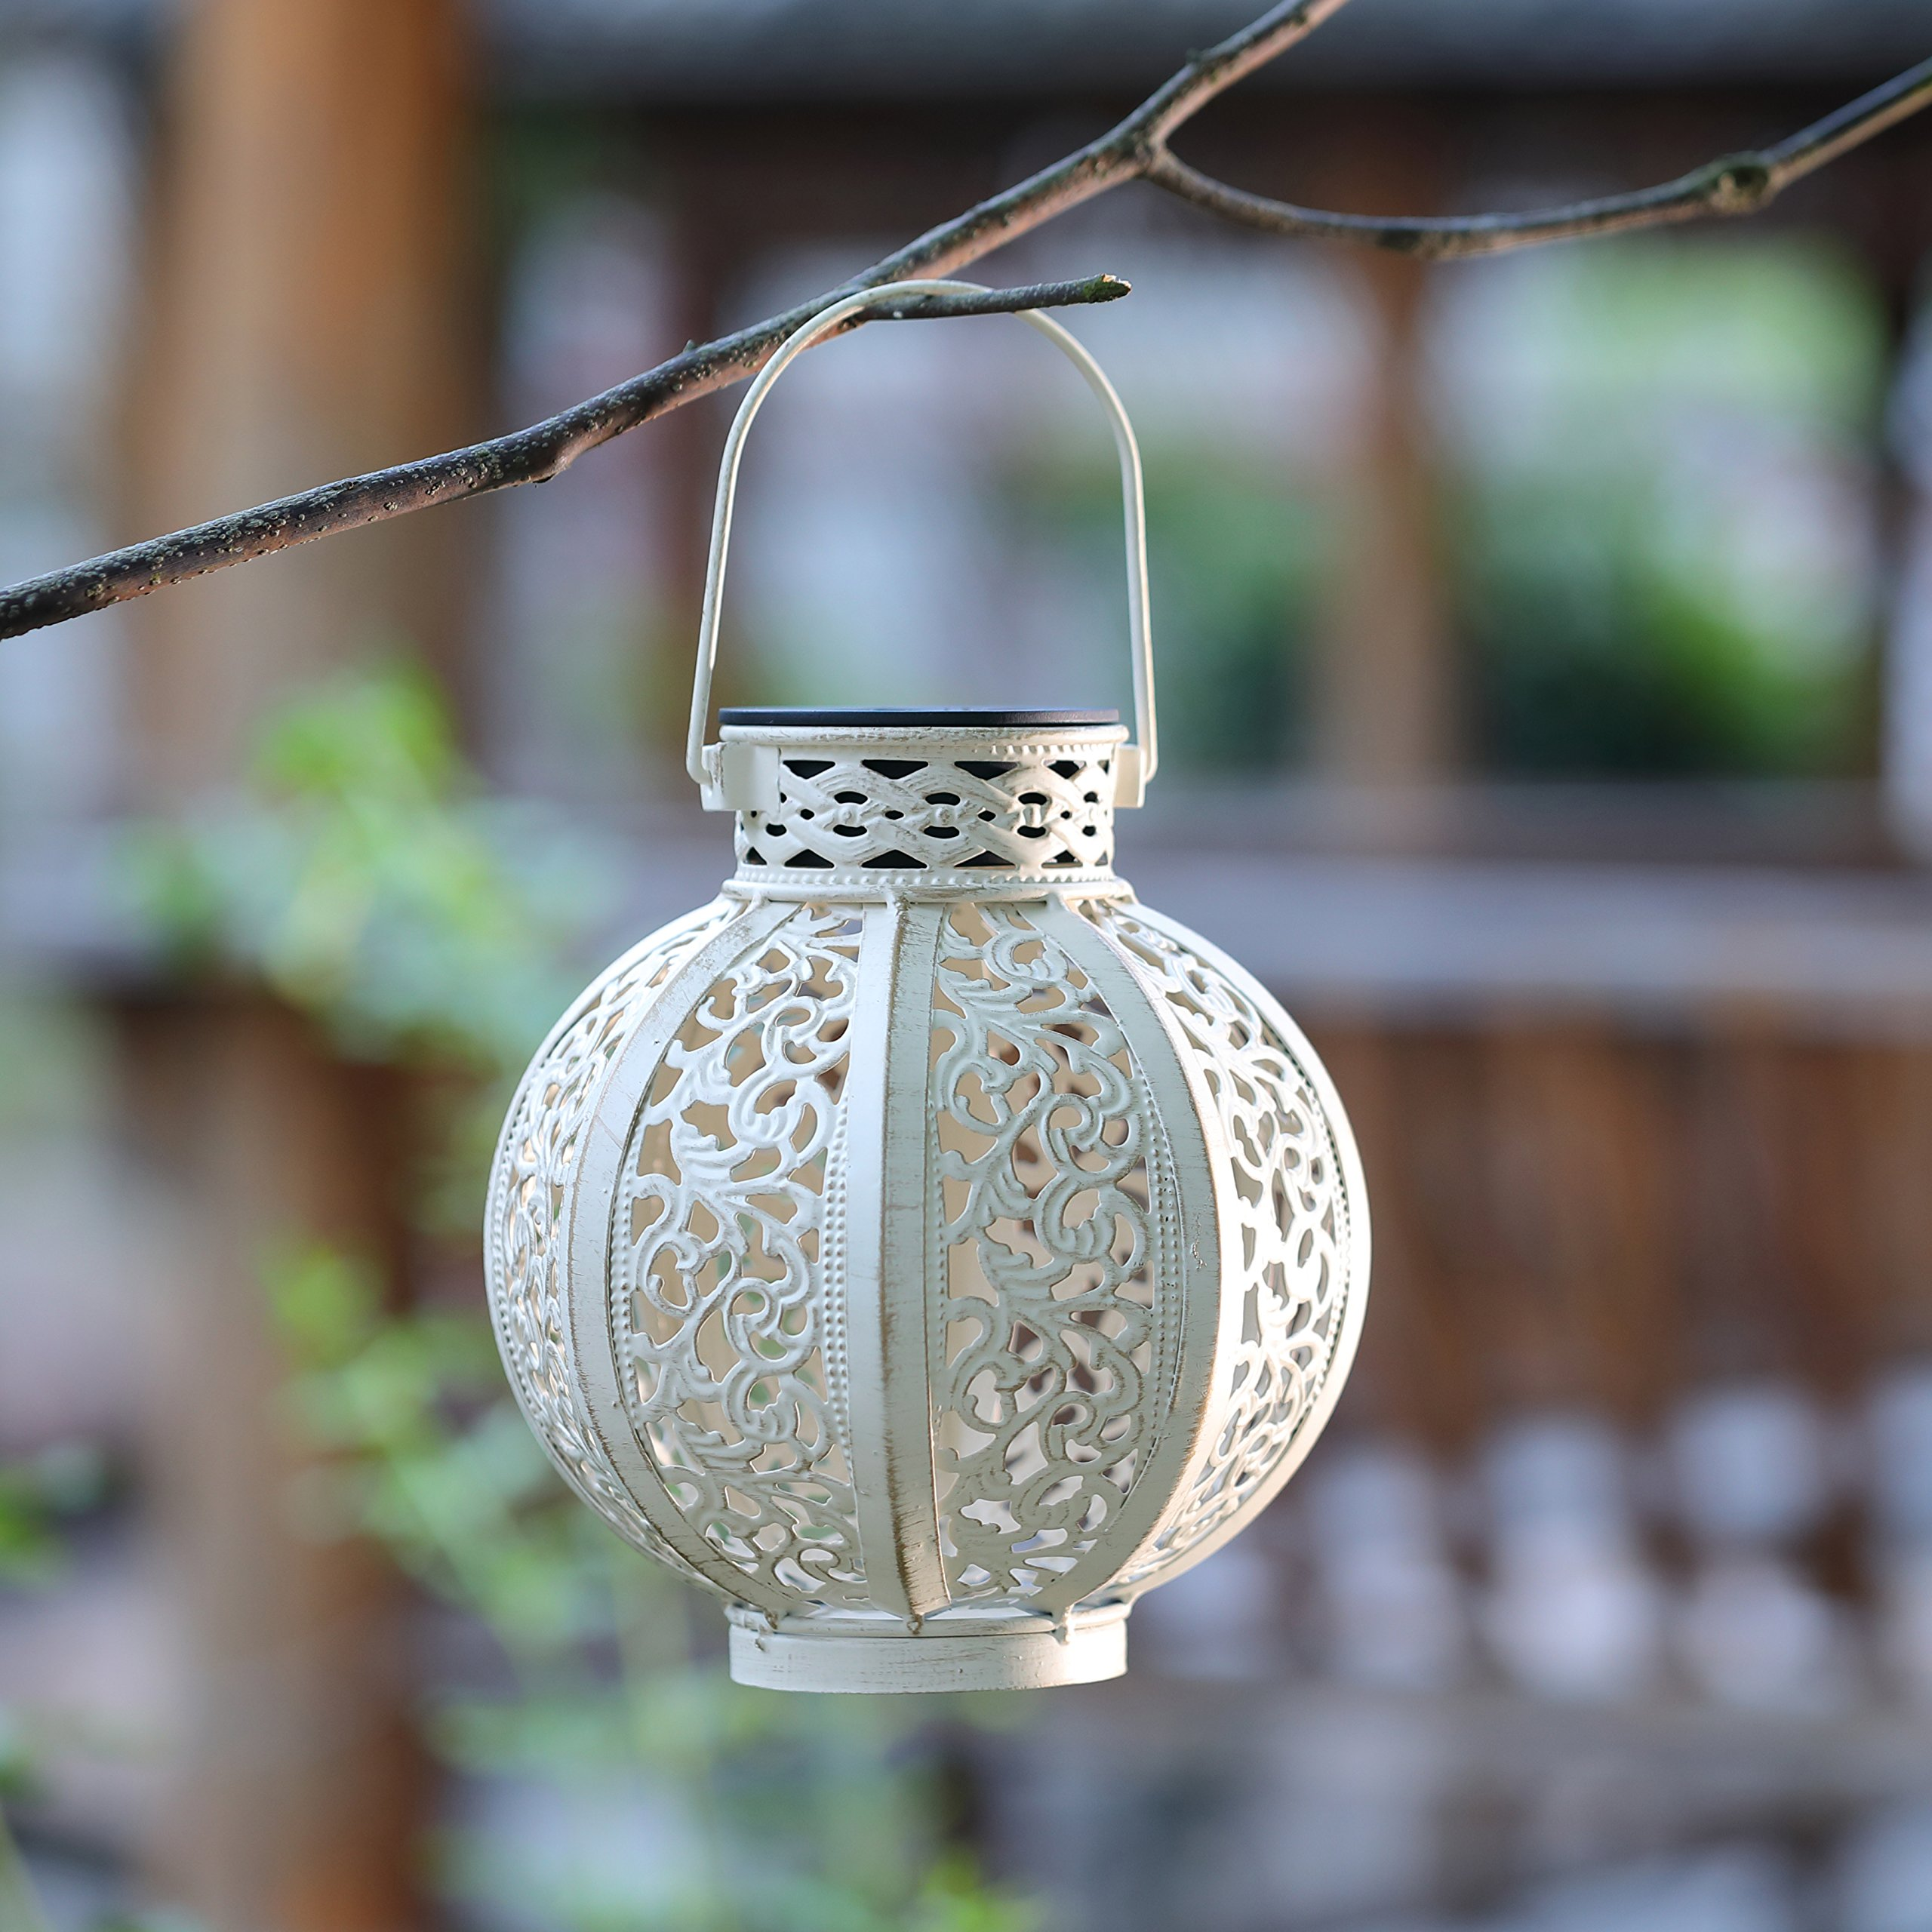 Maggift 2 Pack Hanging Solar Lights Outdoor Solar Lights Retro Hanging Solar Lantern with Handle, 4 Lumens, White by Maggift (Image #3)